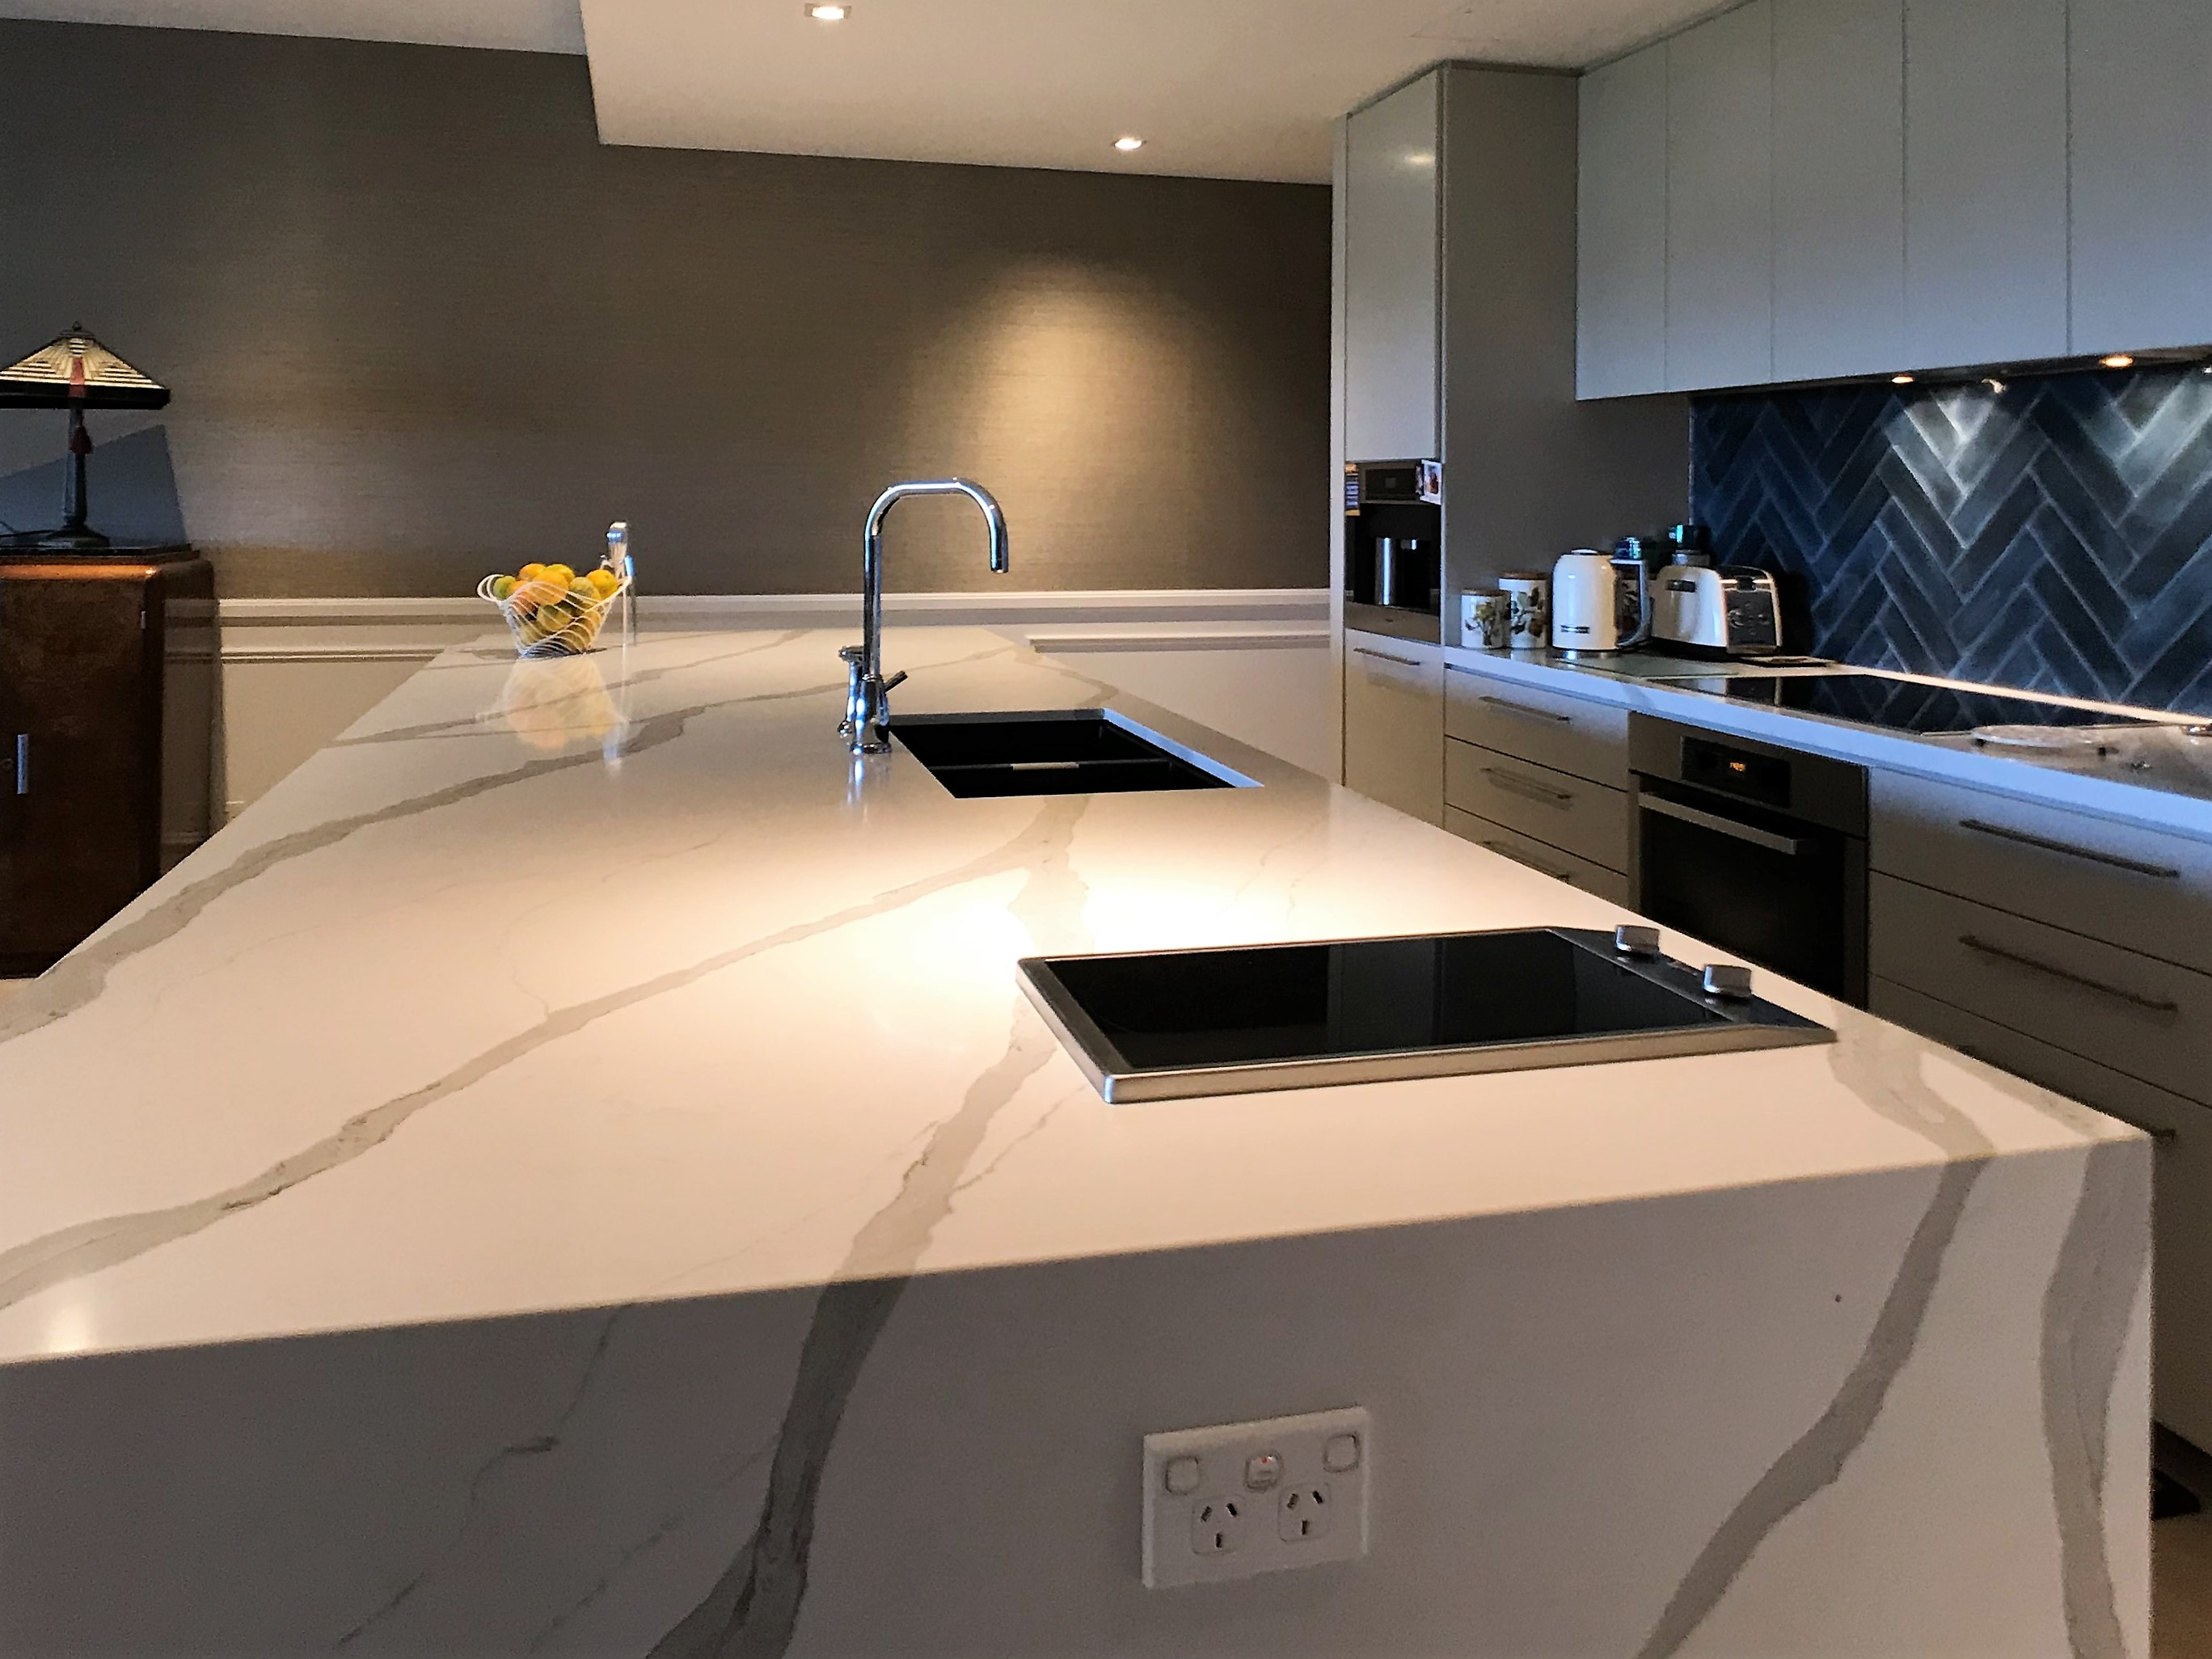 Stylish sinks on kitchen benchtop.